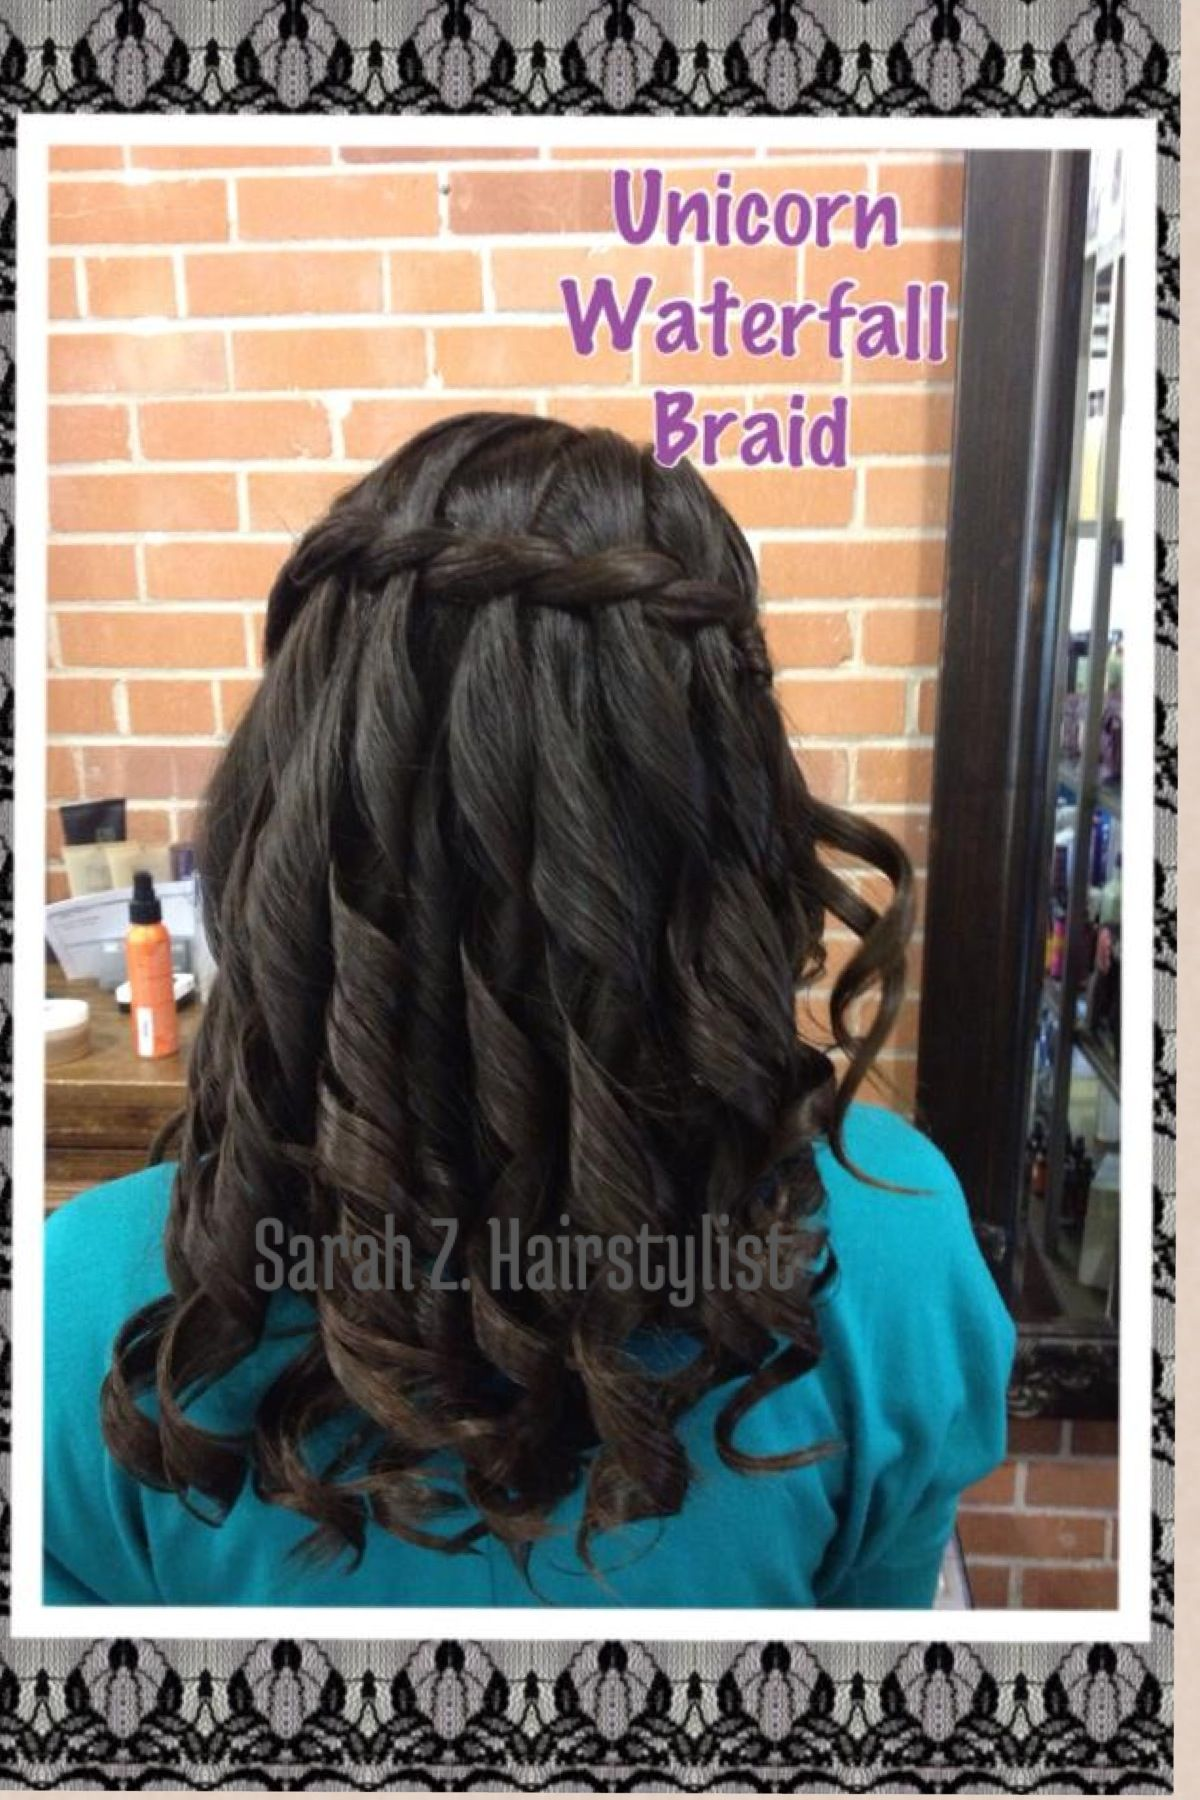 A unicorn waterfall braid is when the strands are twisted around